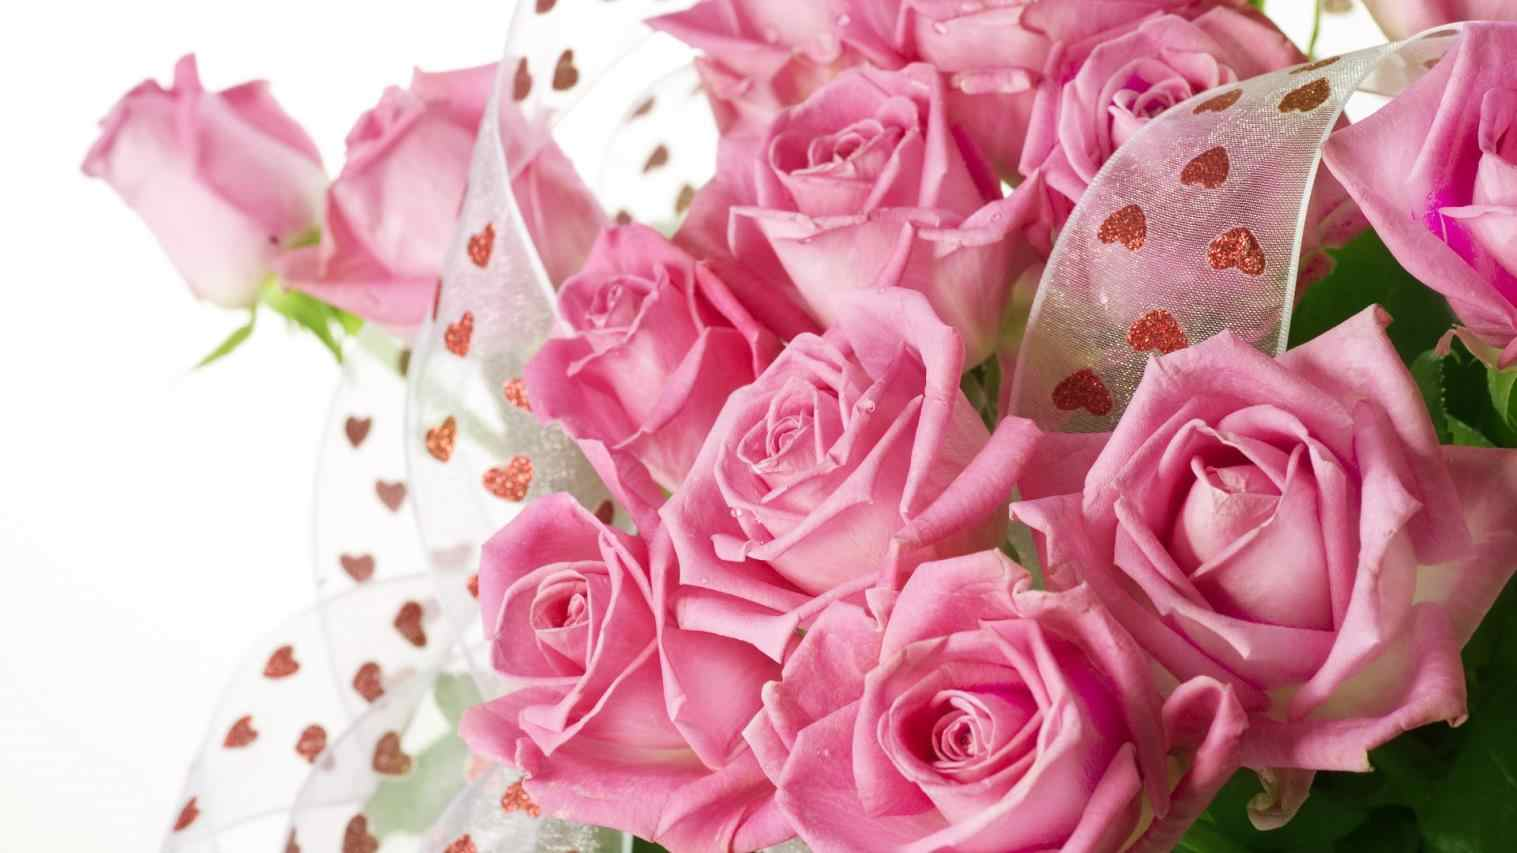 Pictures Of Pink Roses And Hearts | Urldircom